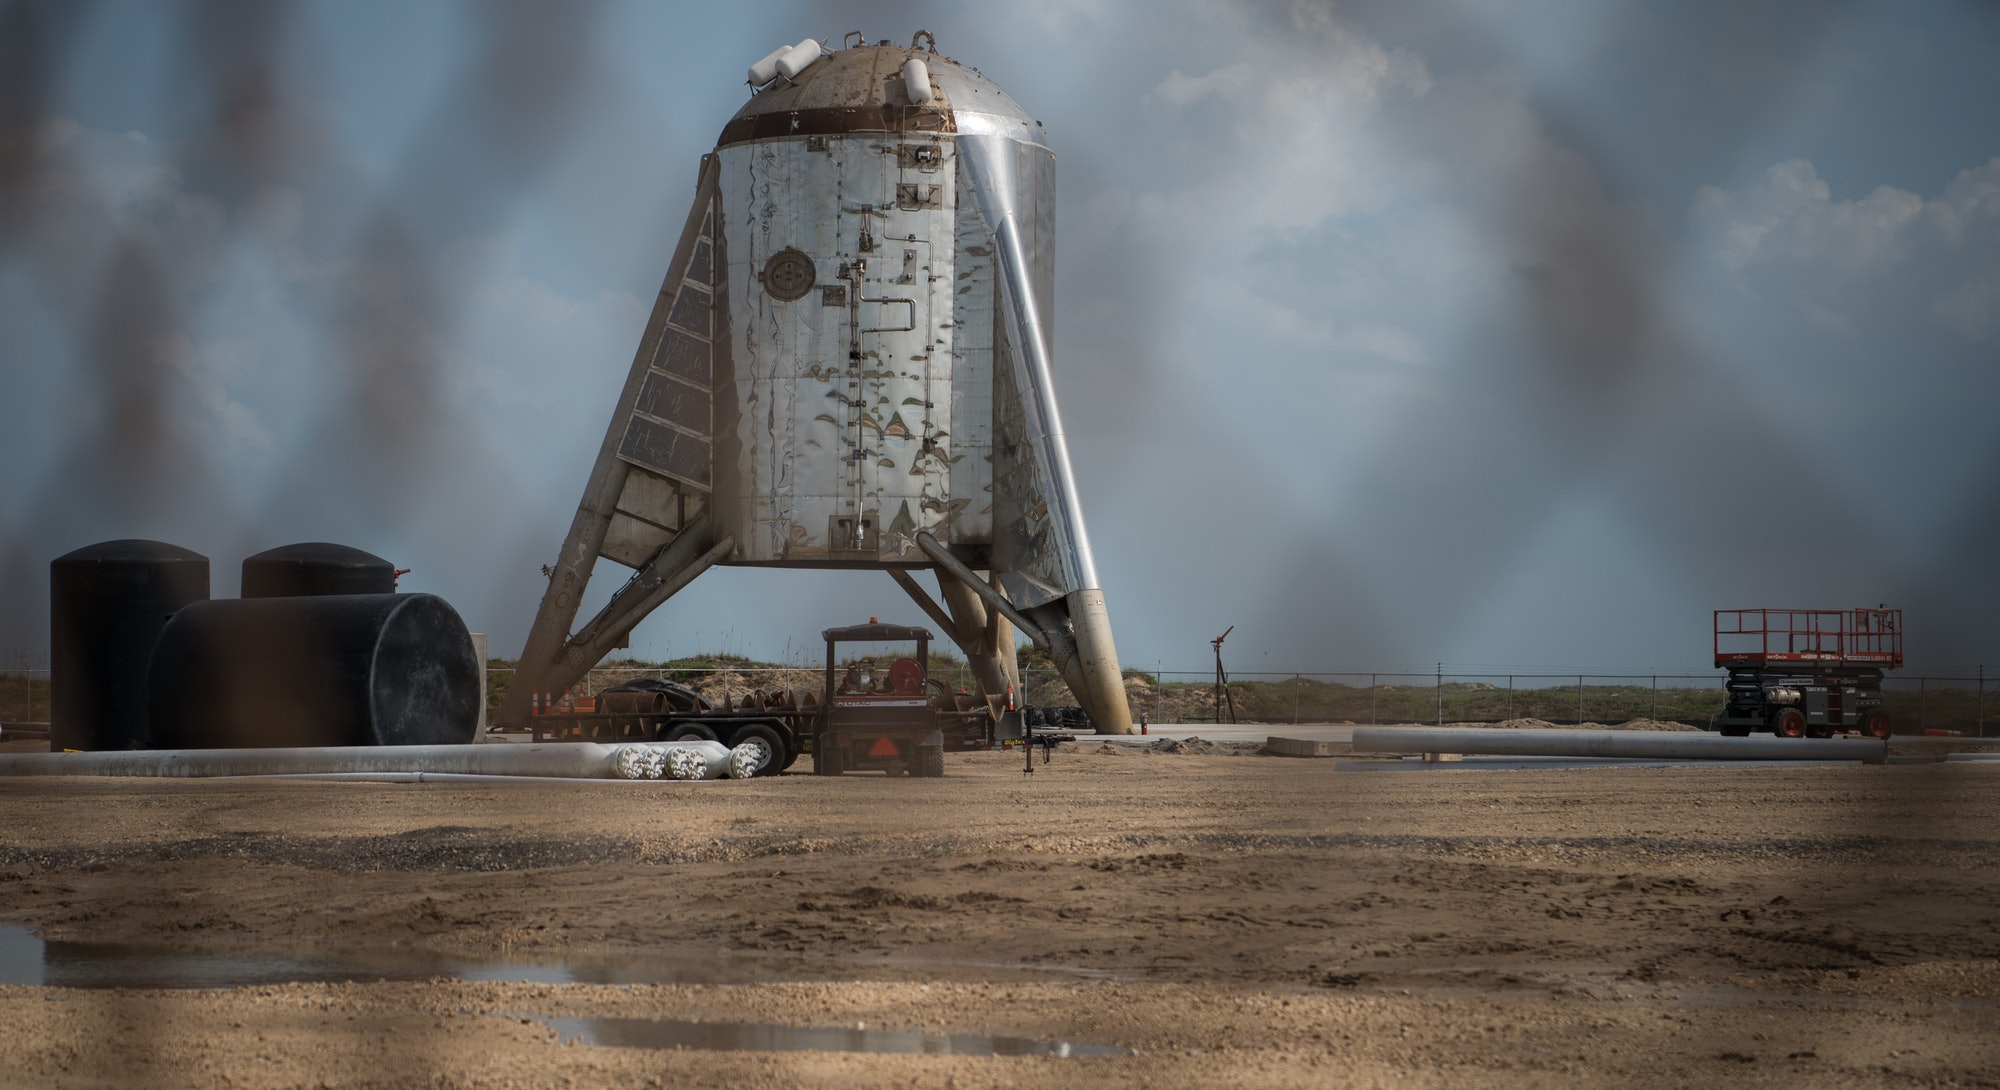 BOCA CHICA, TX - SEPTEMBER 28: SpaceX's Starhopper rocket is seen at the company's Texas launch faci...